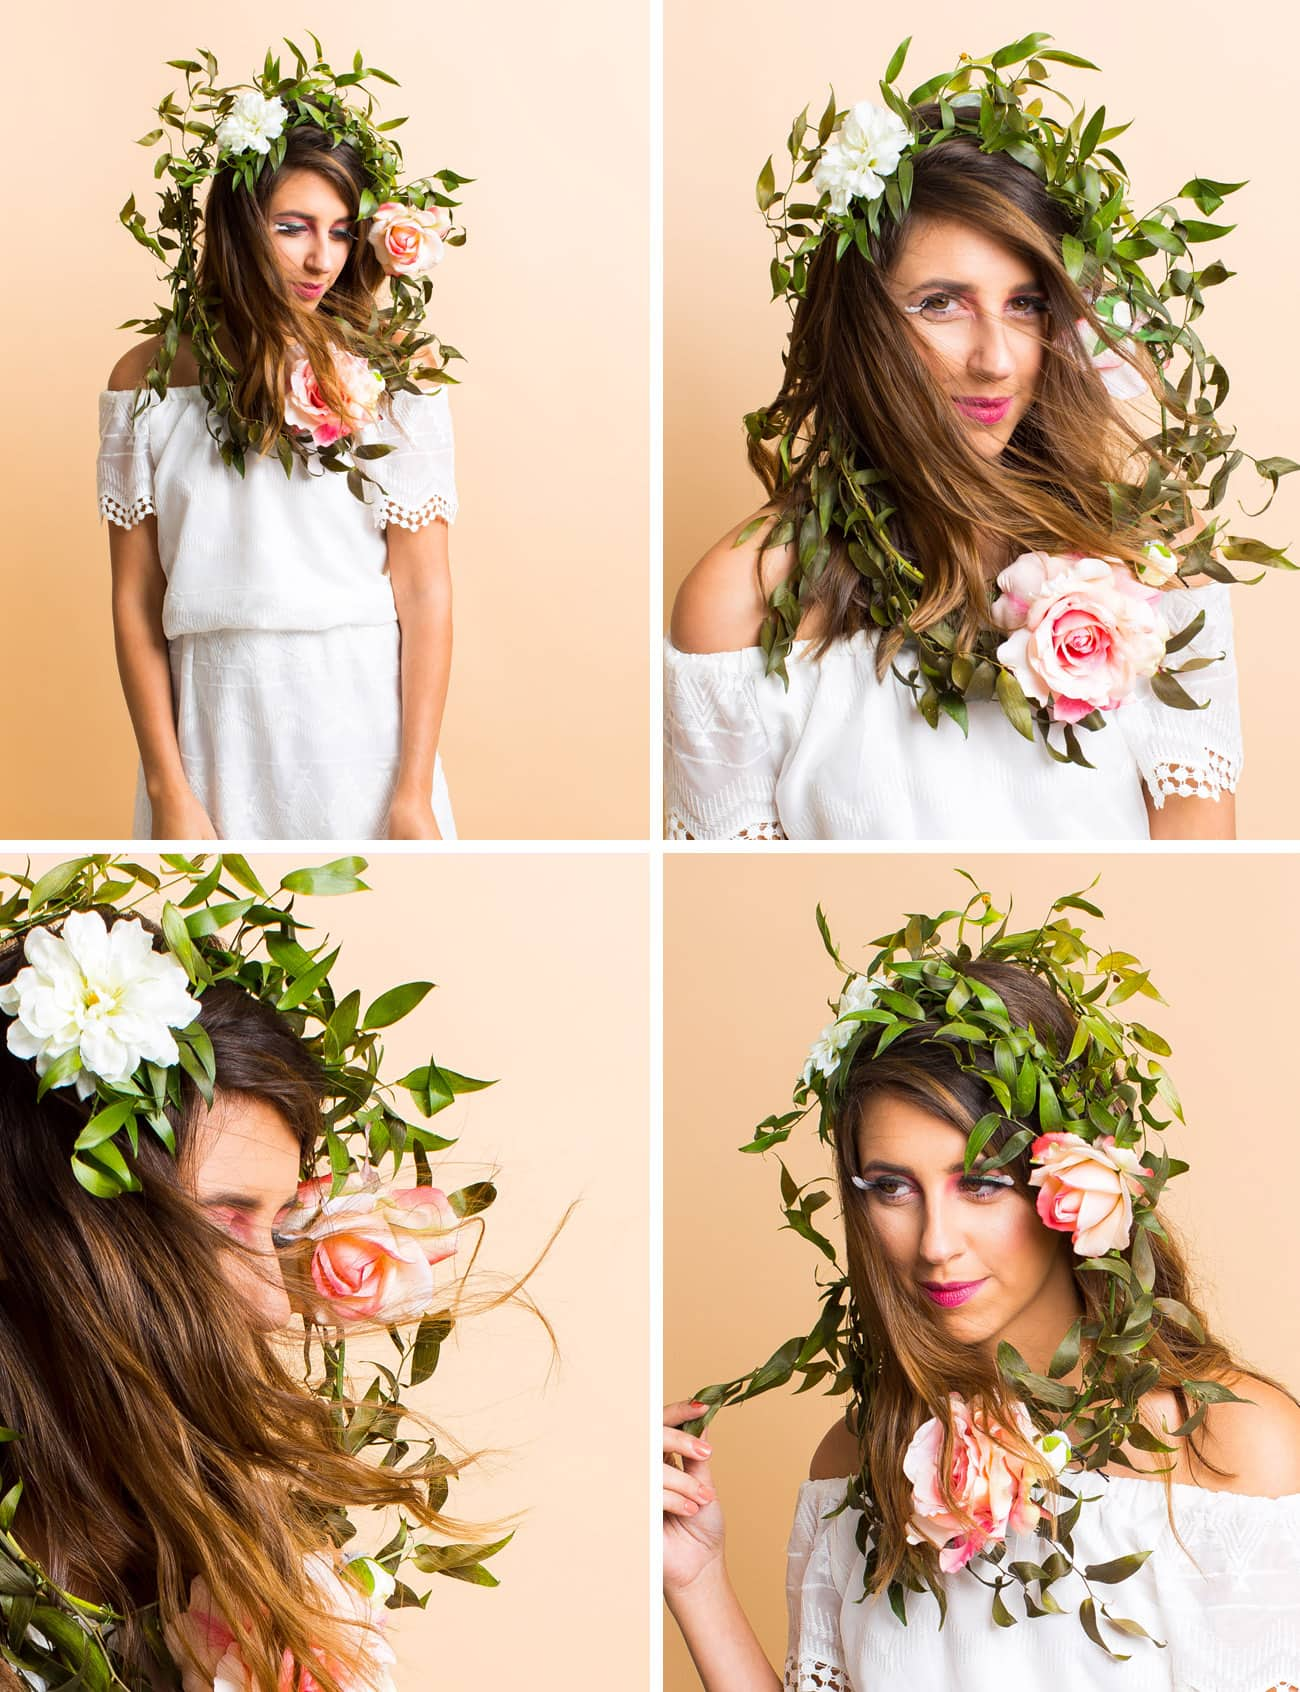 Winks & Wigs: DIY Wig and Lash Combinations for Halloween by Sugar & Cloth- Floral Headpiece- Flowers - ideas - ashley rose - best DIY blog - houston blogger #diy #blogger #costume #halloween #diycostume #halloweencostume #wig #falsies #lastminute